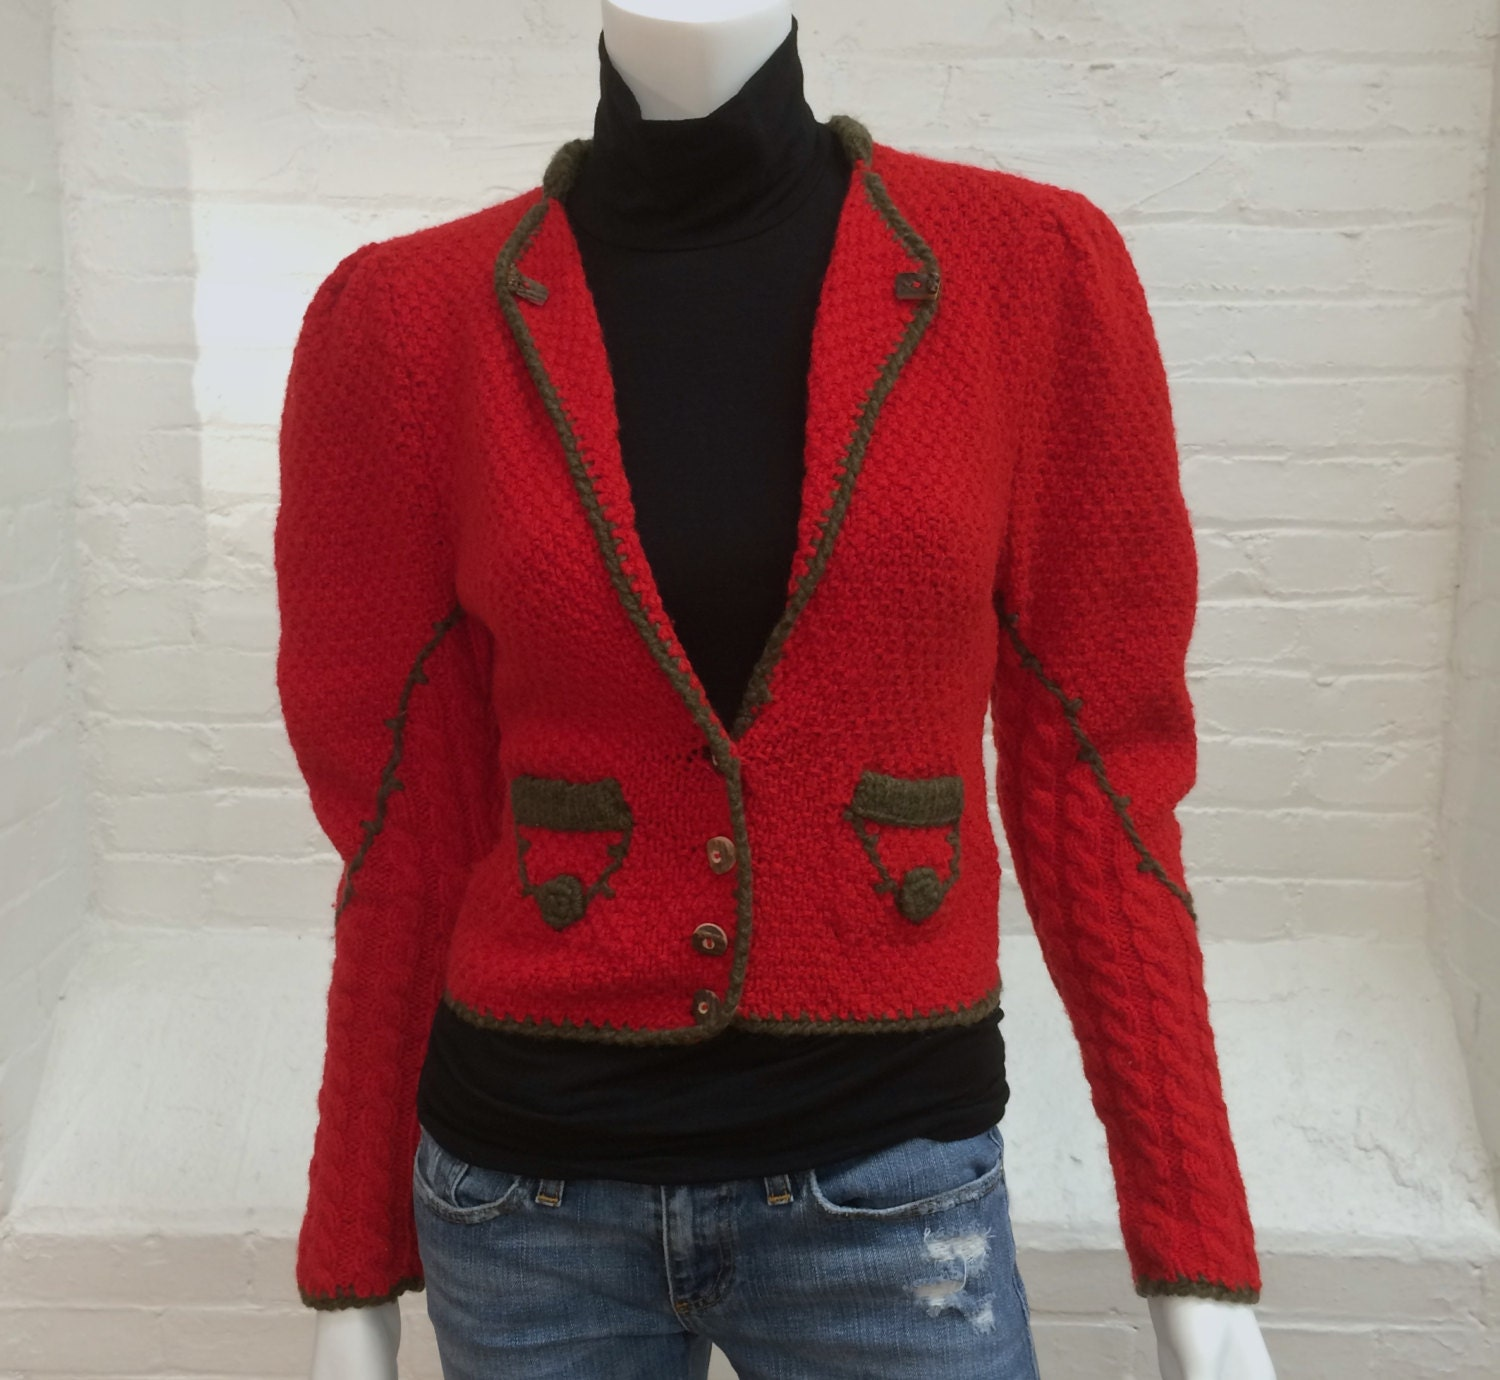 Find great deals on eBay for vintage red wool cardigan. Shop with confidence.